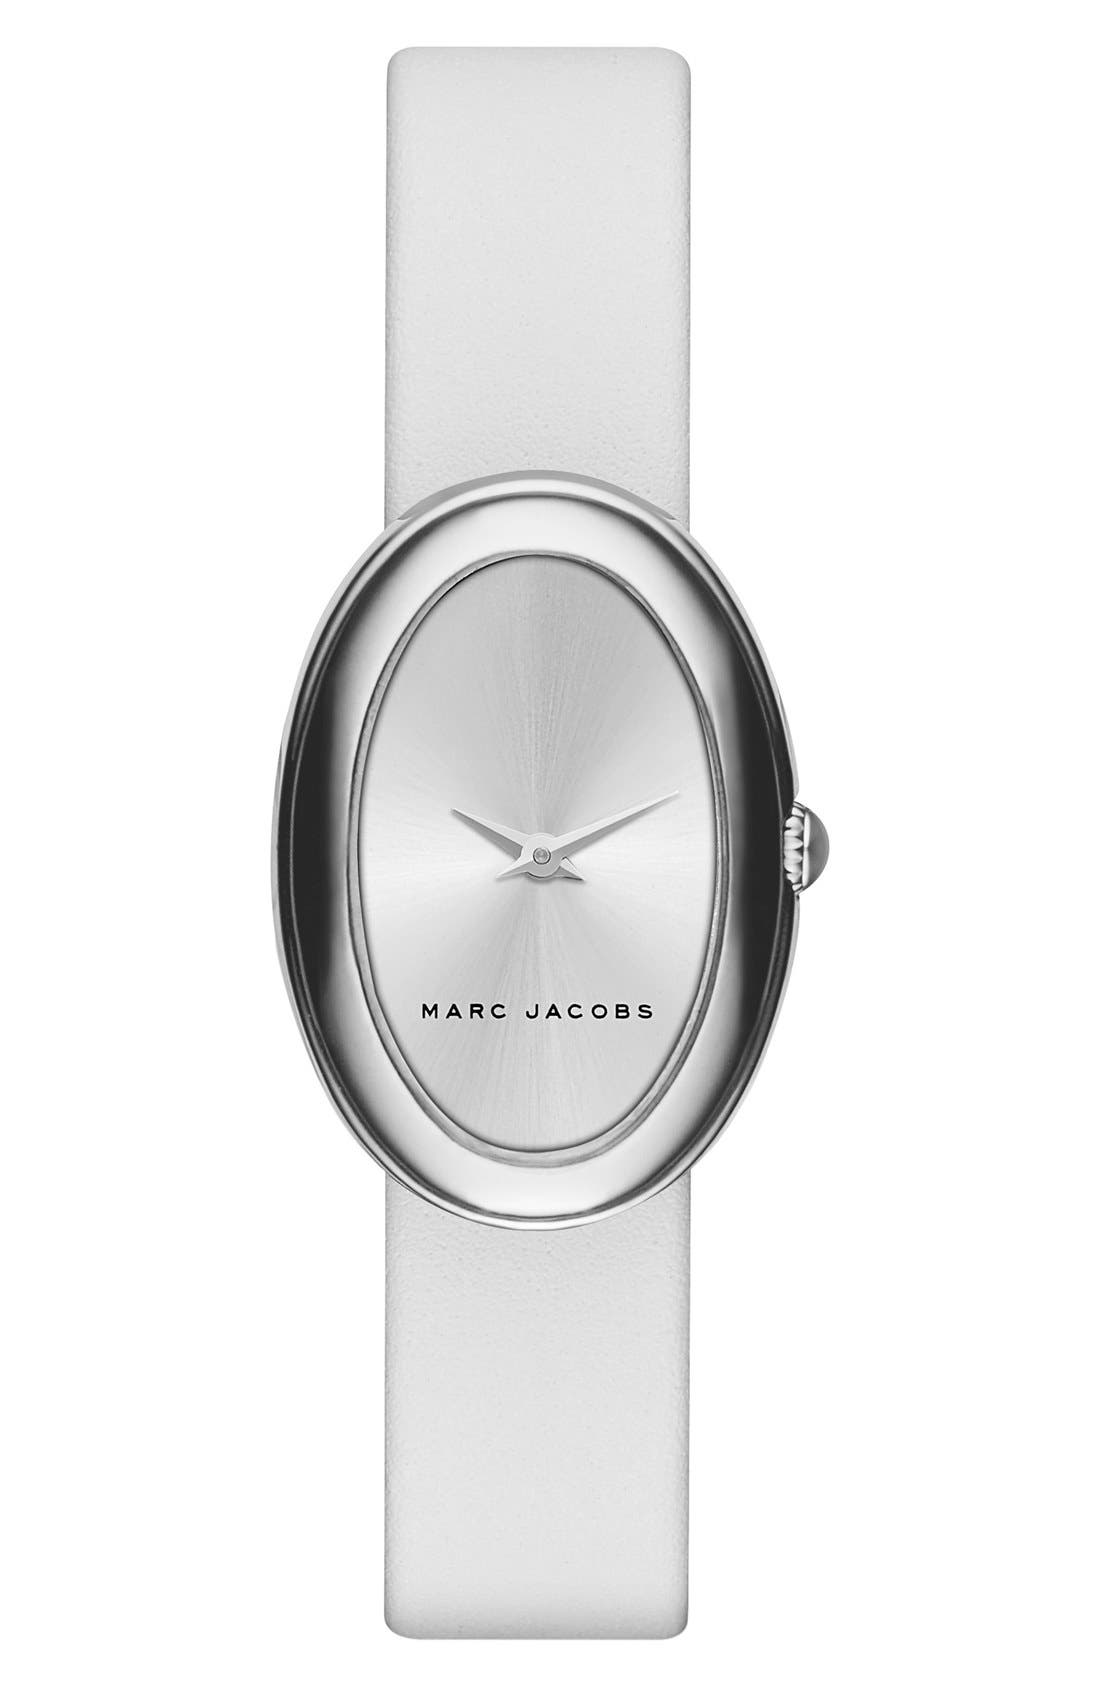 Main Image - MARC JACOBS 'Cicely' Leather Strap Watch, 31mm